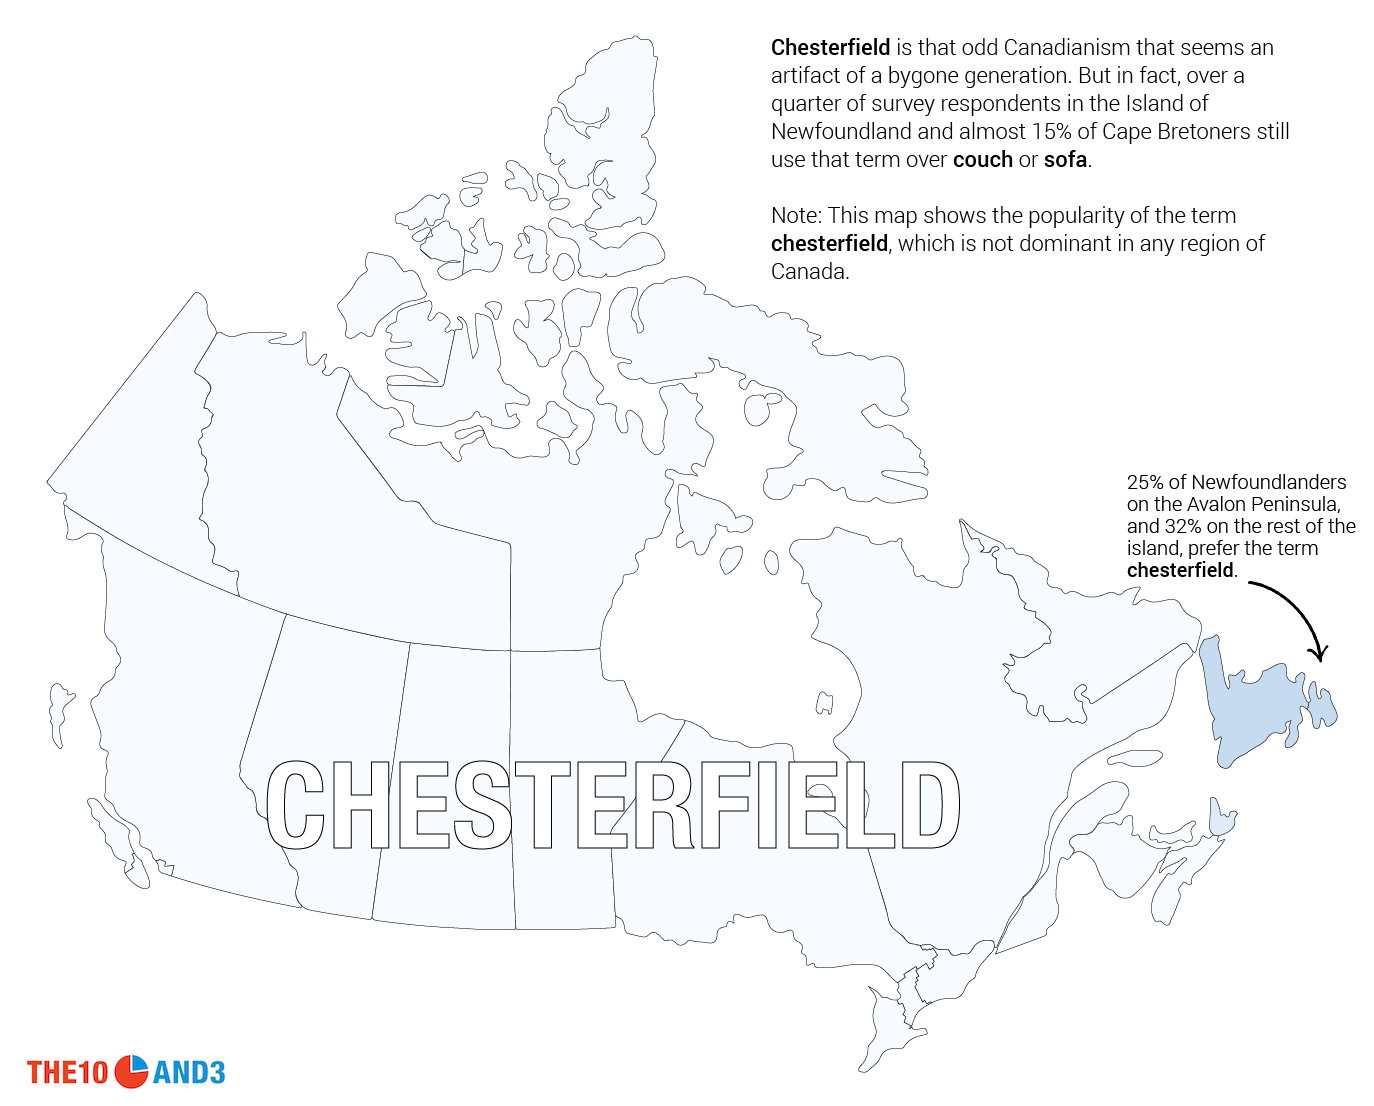 Popularity of Chesterfield